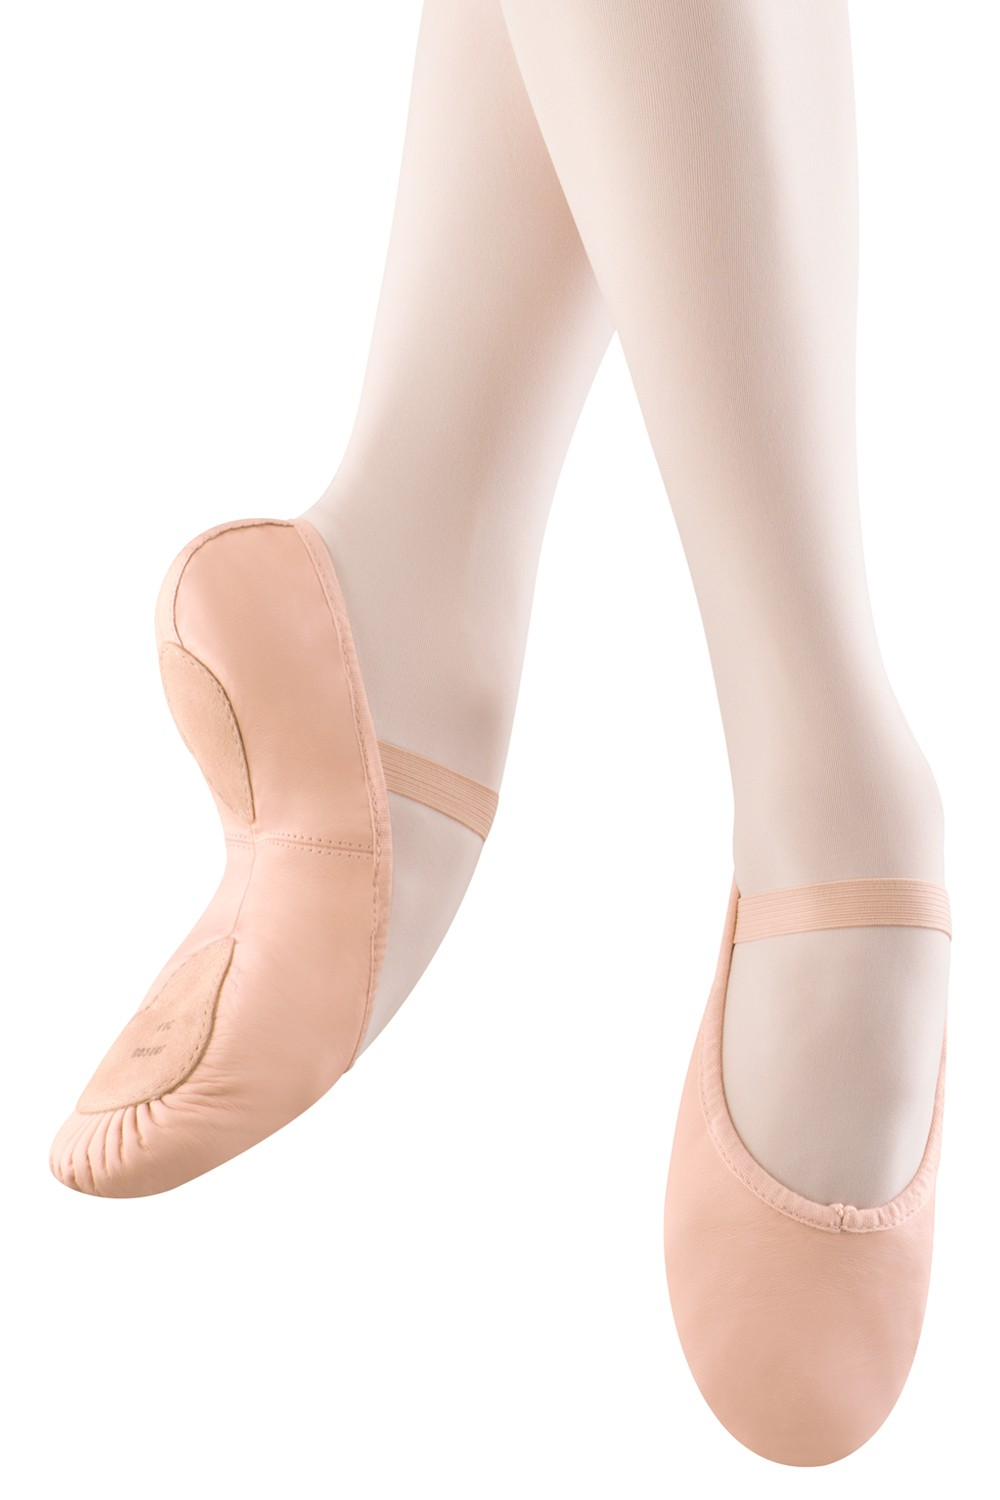 Arise Suela Partida Women's Ballet Shoes